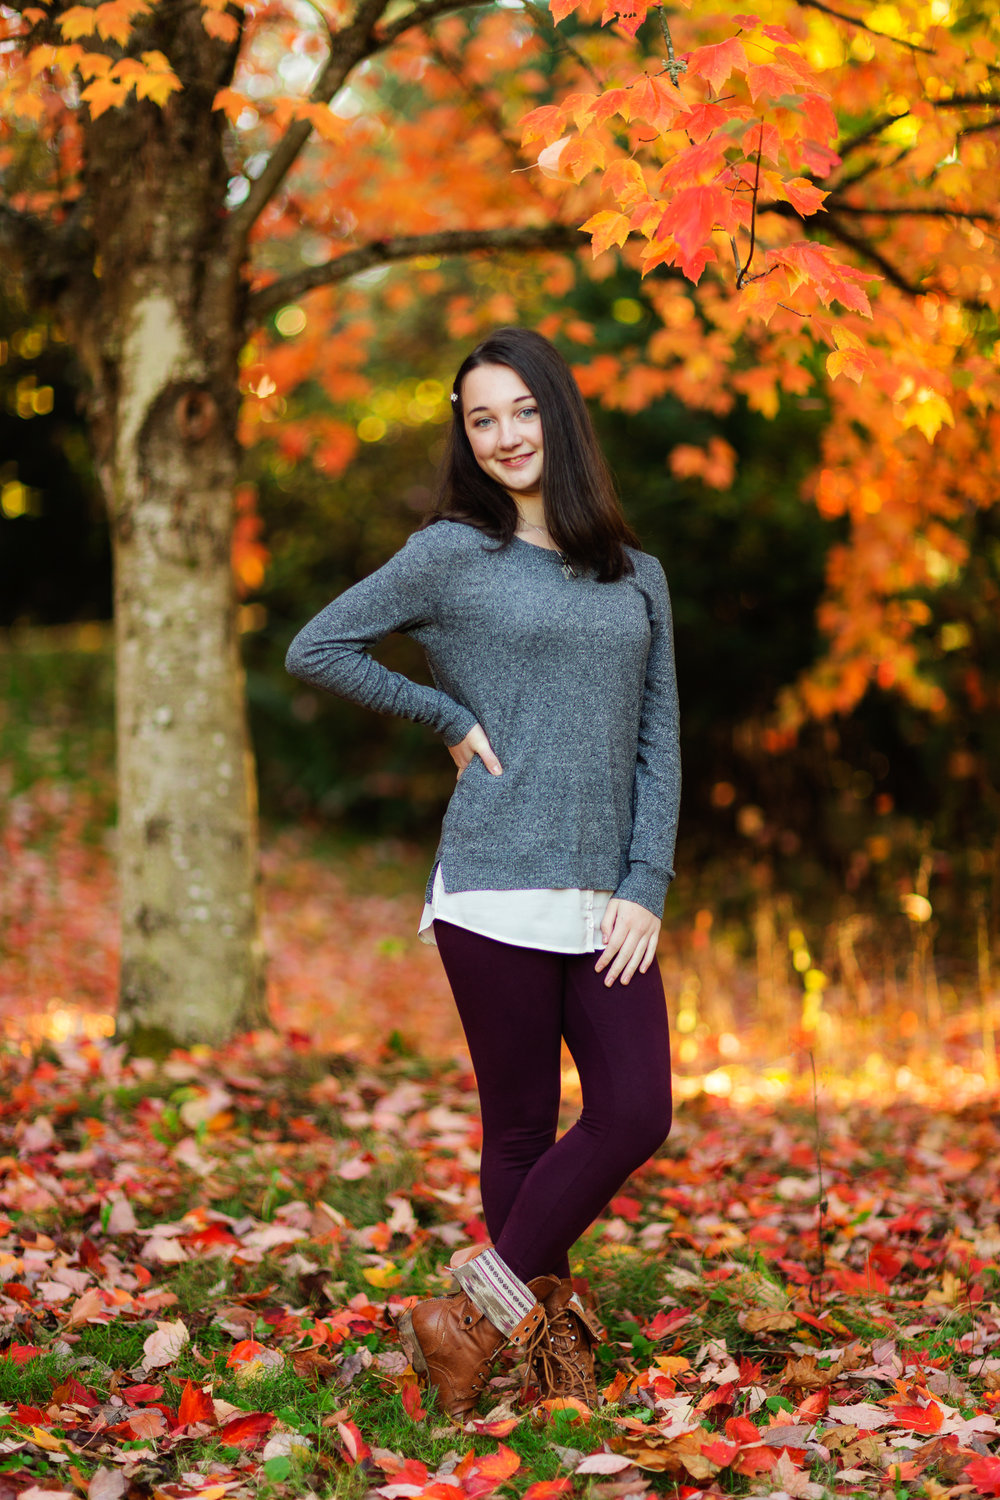 ariellanoellephotography-family-fall-mini-sessions-monroe-duvall-woodinville-redmond-kirland-seattle-skyline-bellevue-area-photographer-highschool-seniors-1-4.jpg